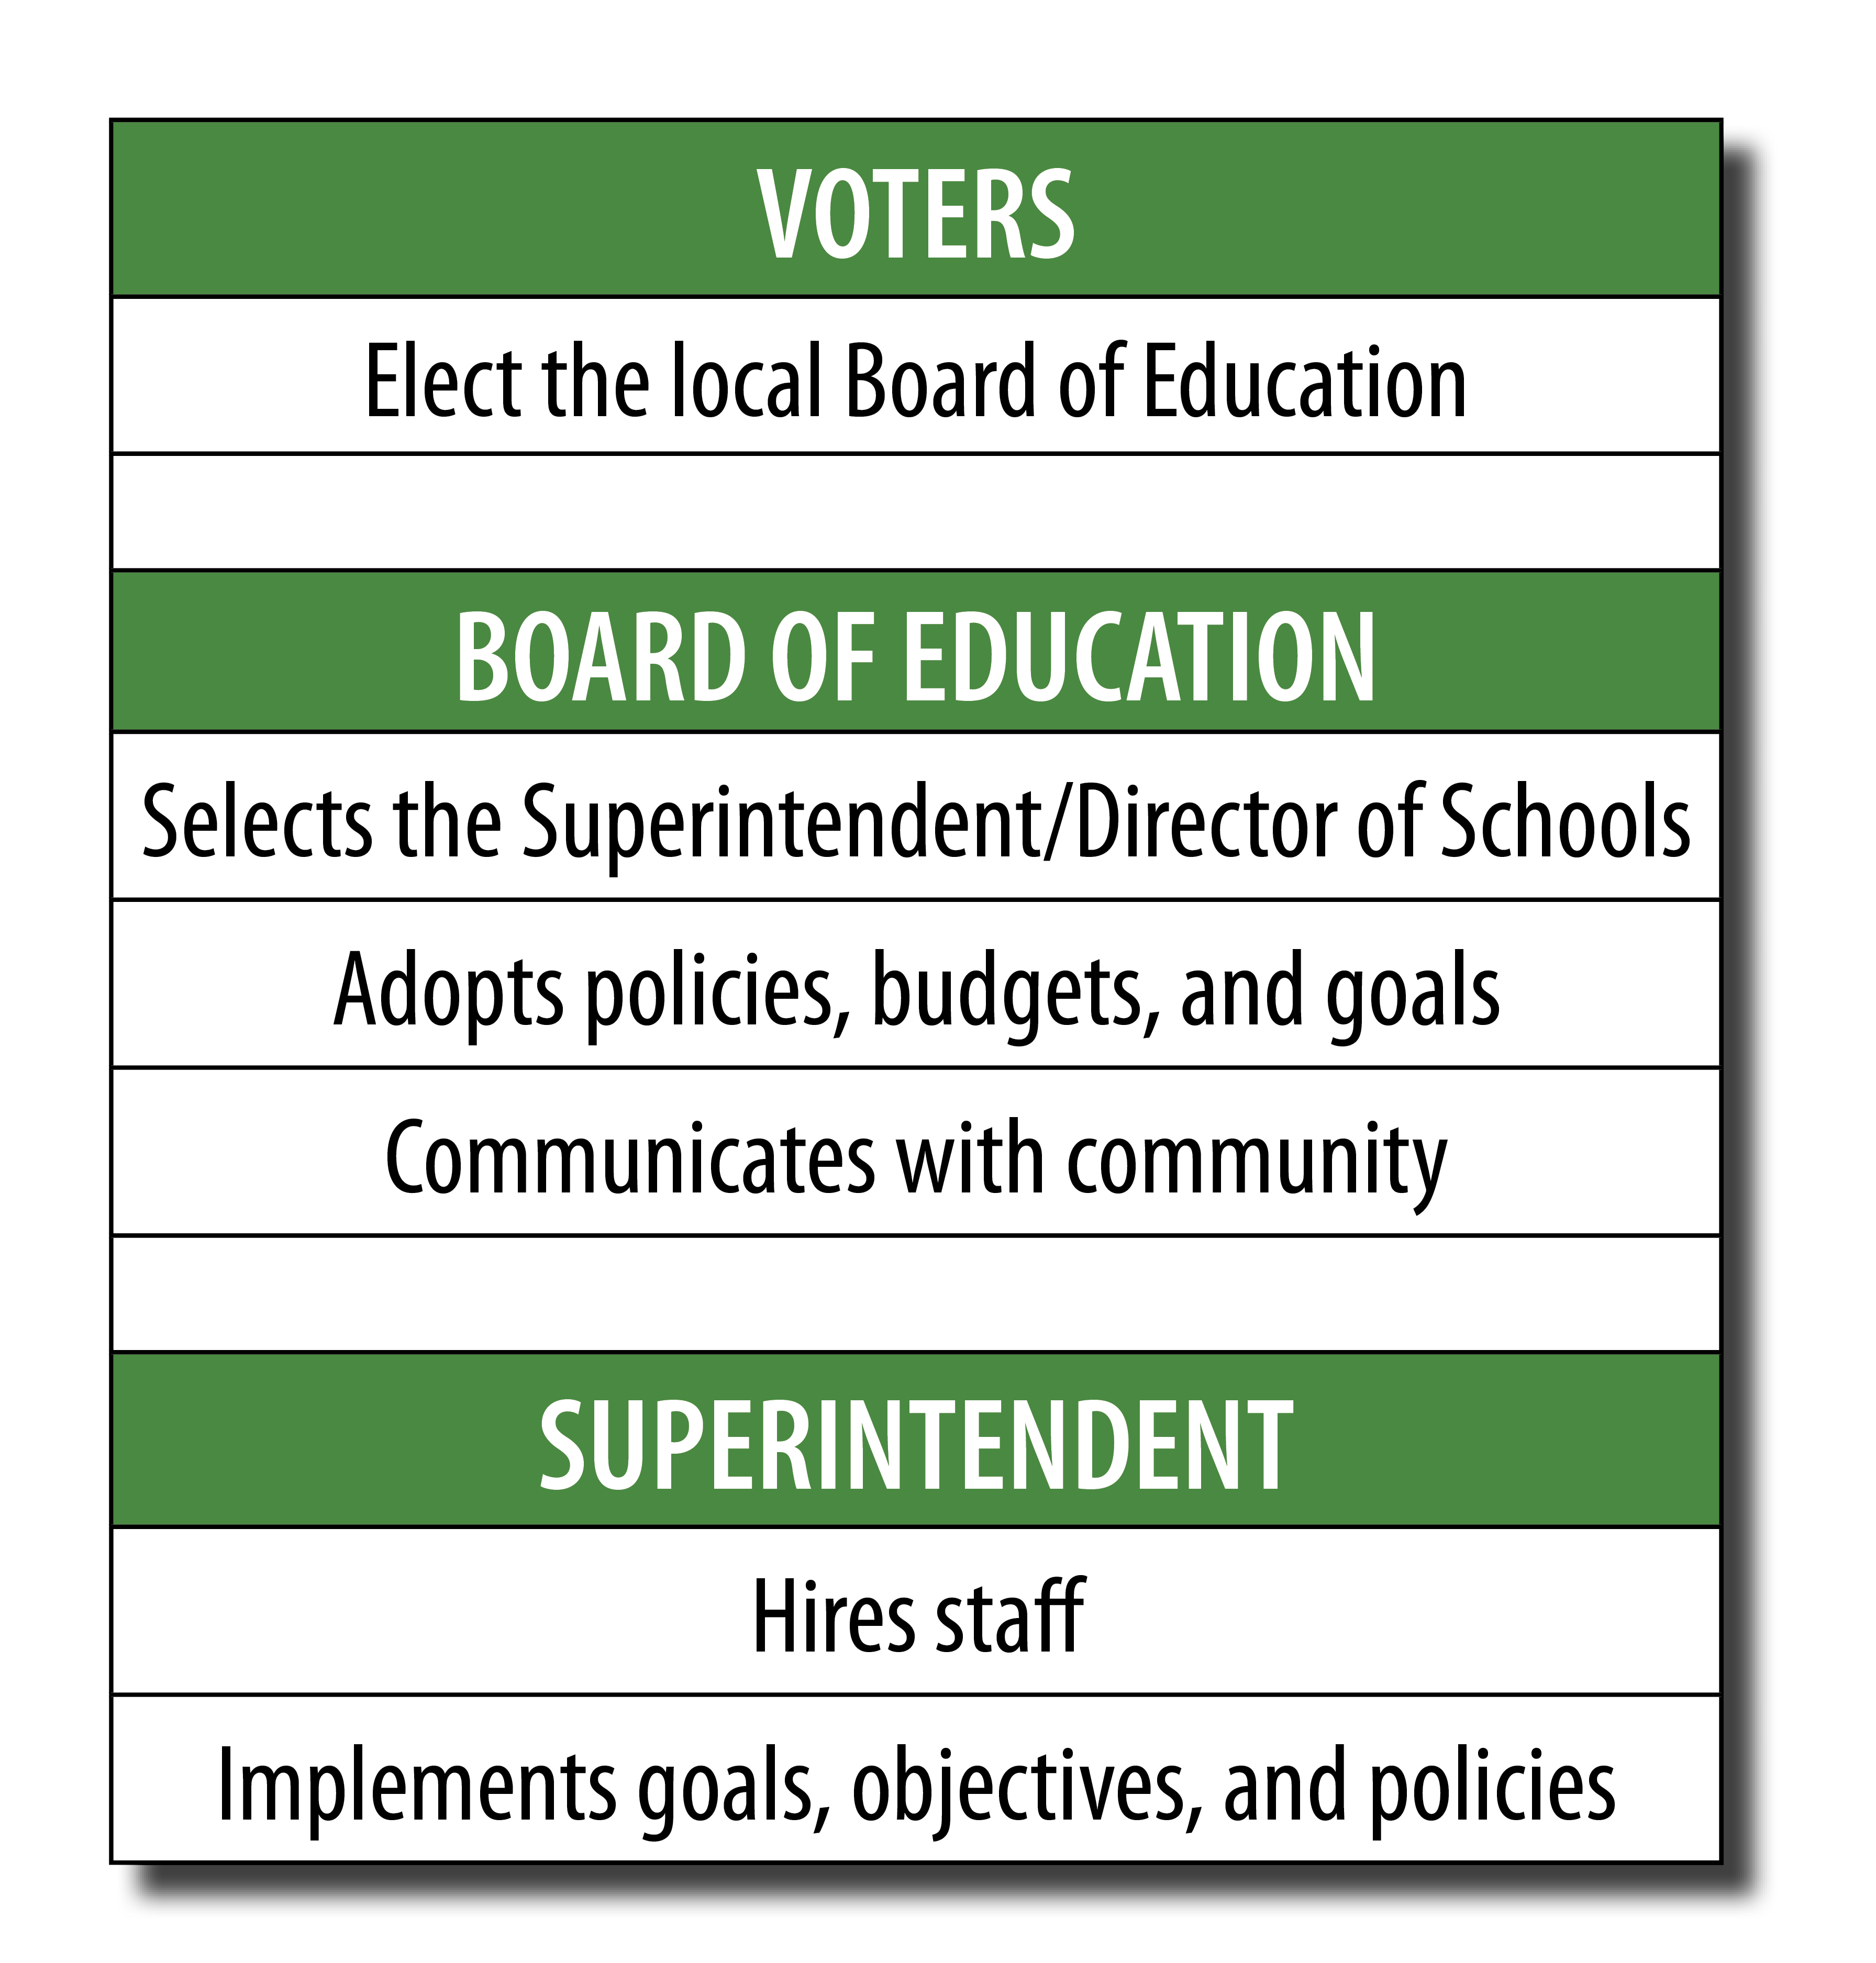 State Departments of Education - ROLE AND FUNCTION, VOCATIONAL EDUCATION